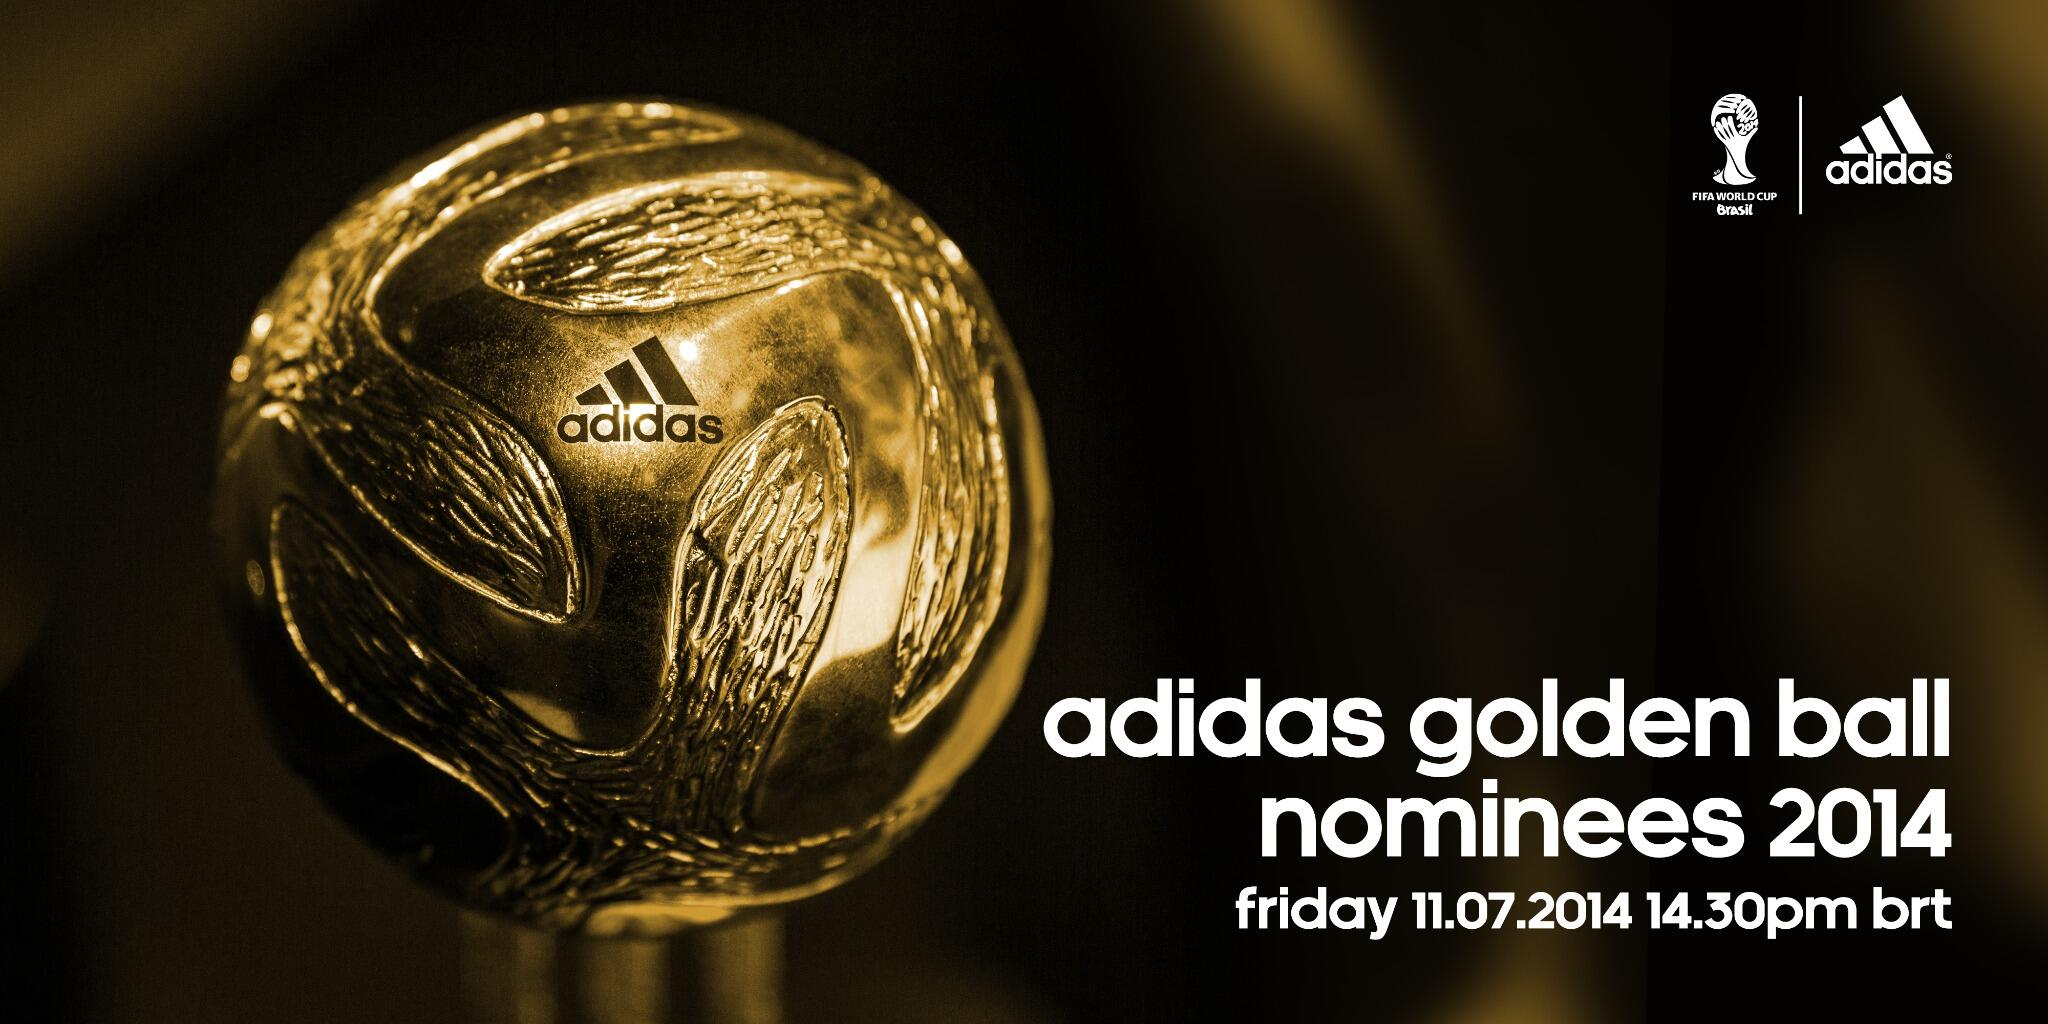 Twitter / brazuca: Big news everyone; tomorrow ...